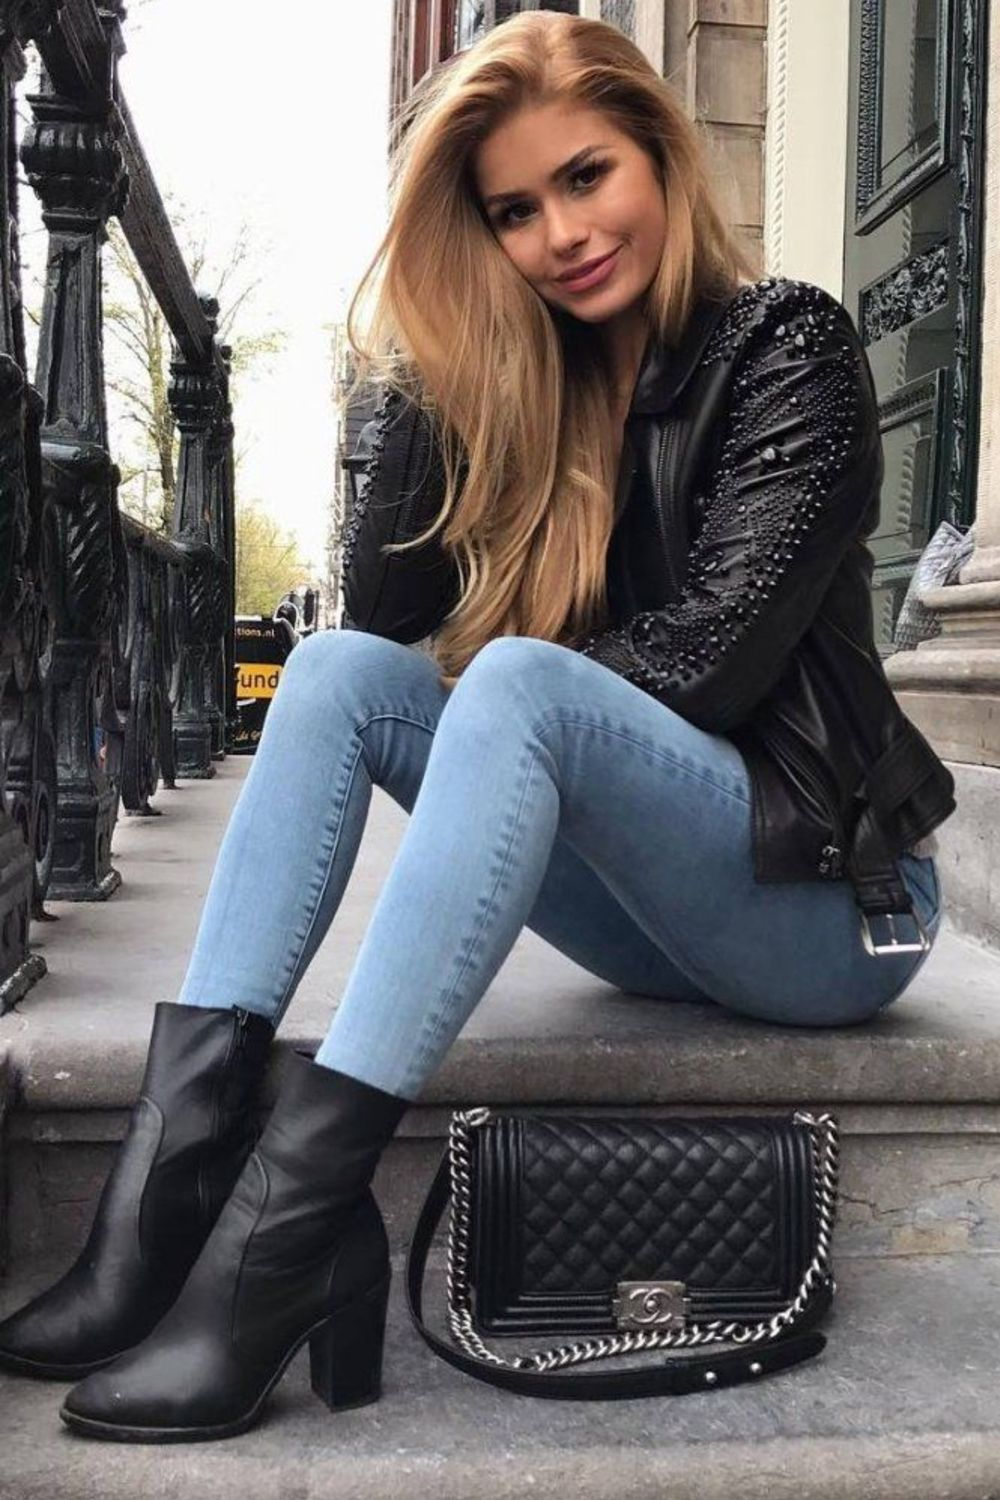 Black Ankle Boots Fall Outfit With Denim Jeans And Faux Leather Jacket